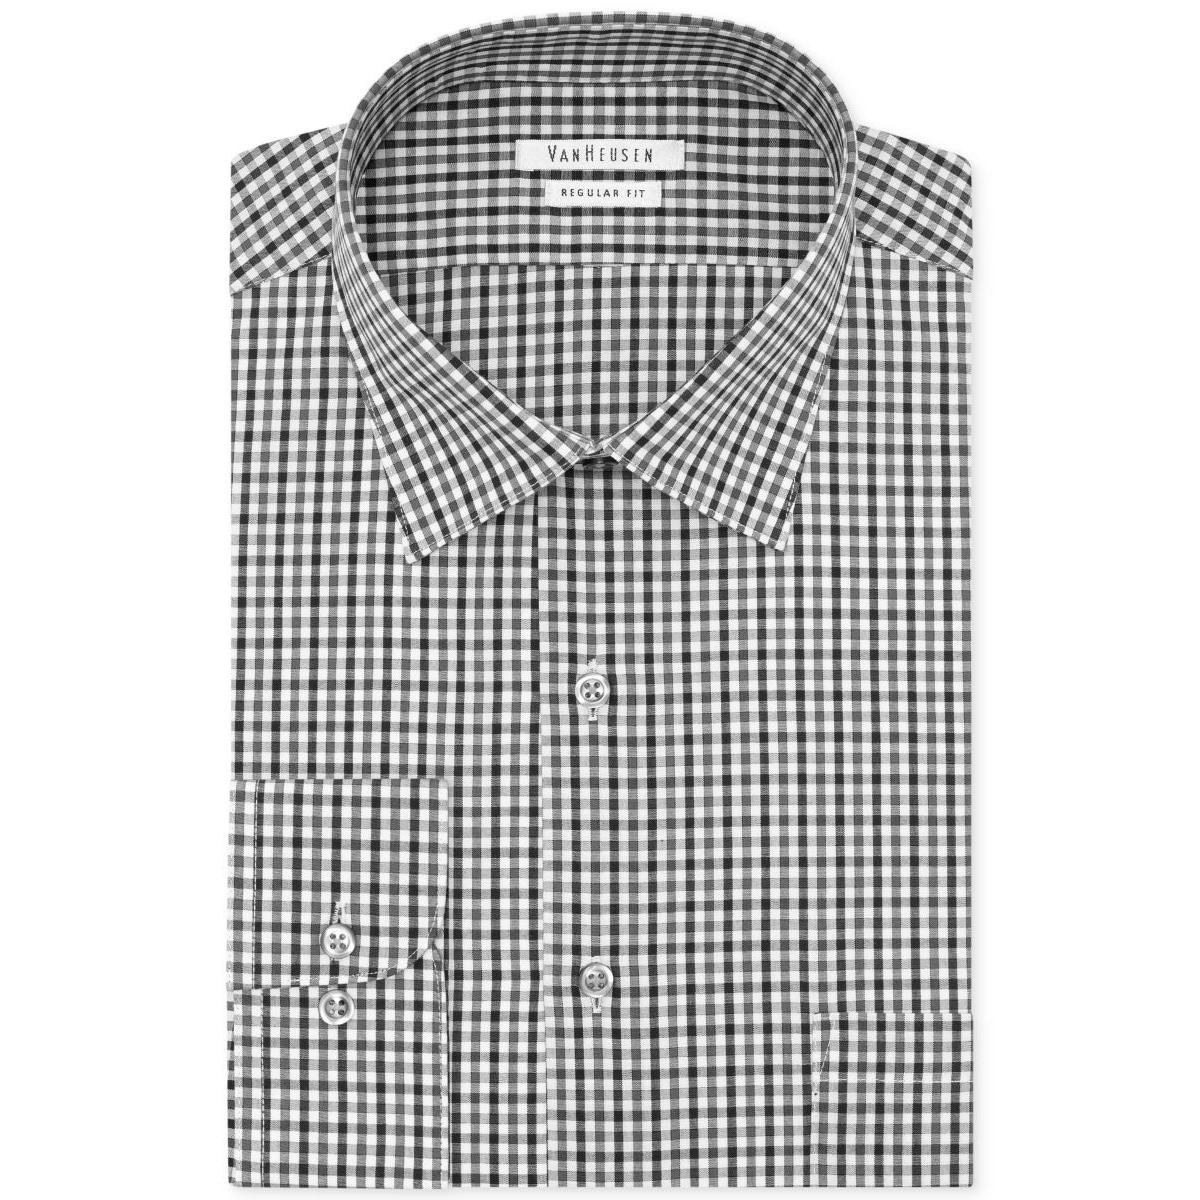 996eacaaf2 Shop Van Heusen Mens Button-Down Shirt Regular Fit Gingham - 15.5 32 33 -  Free Shipping On Orders Over  45 - Overstock - 20713121